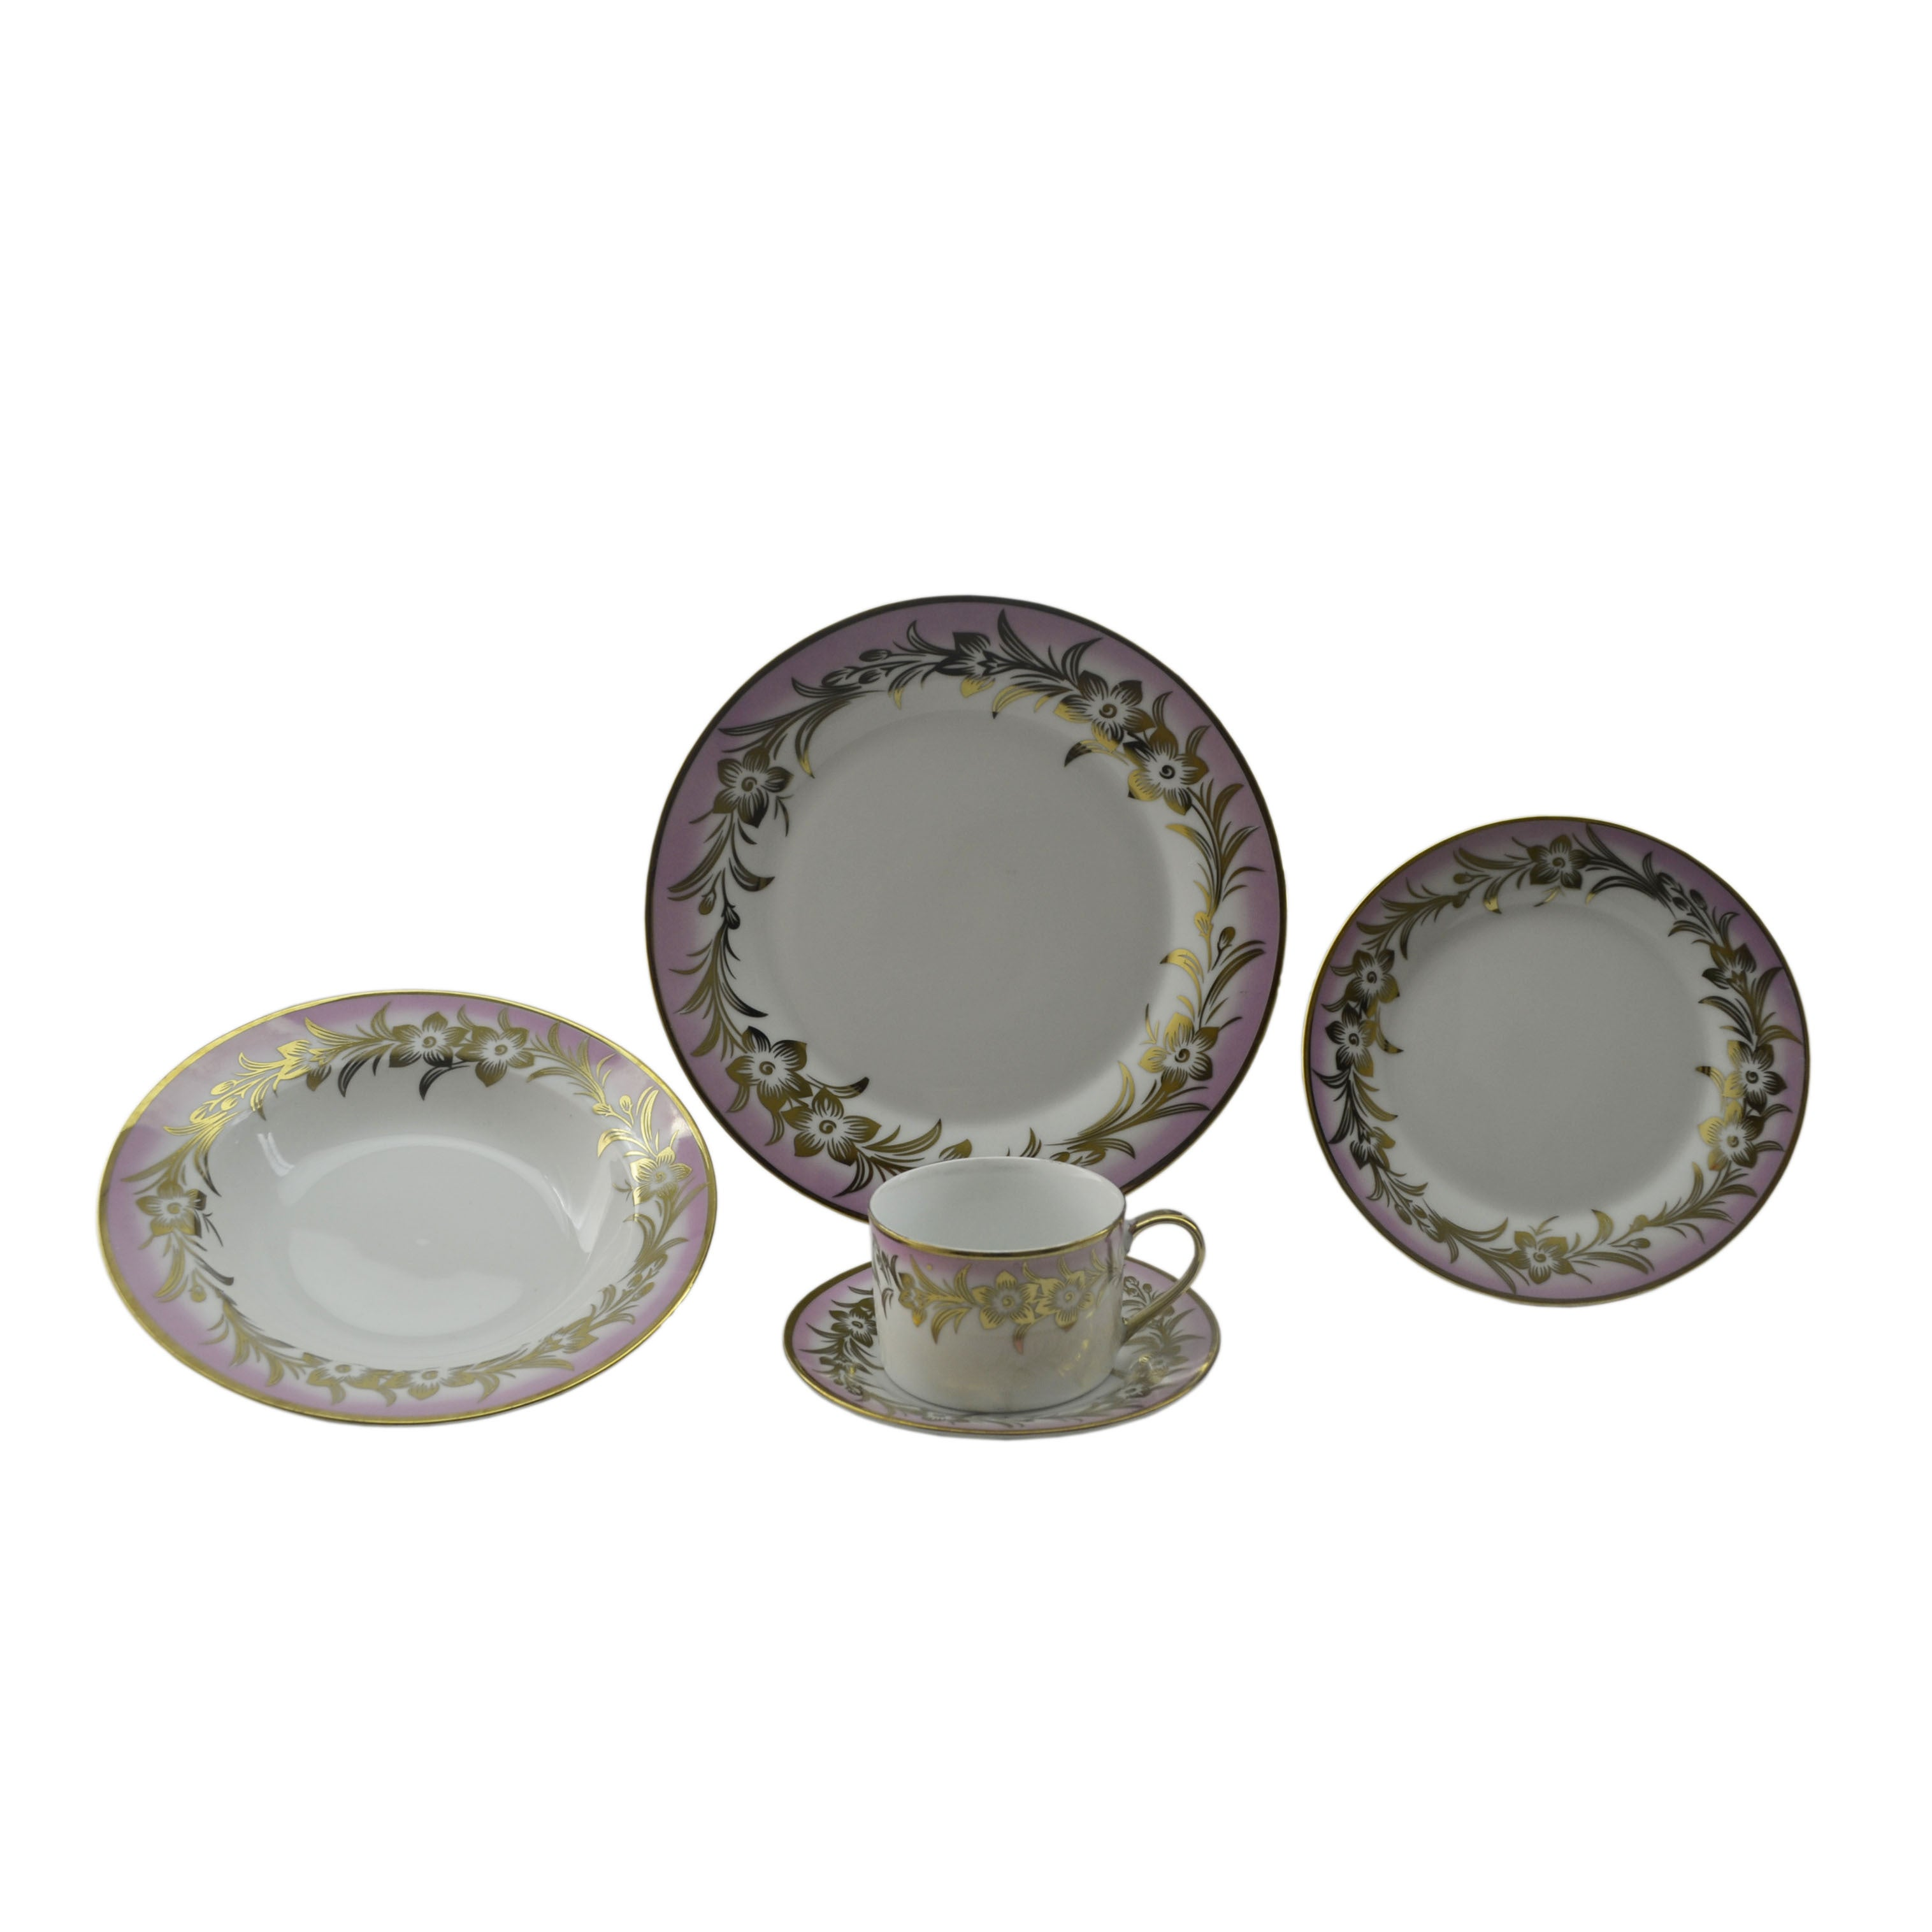 Patterned Dinnerware Sets Simple Design Ideas